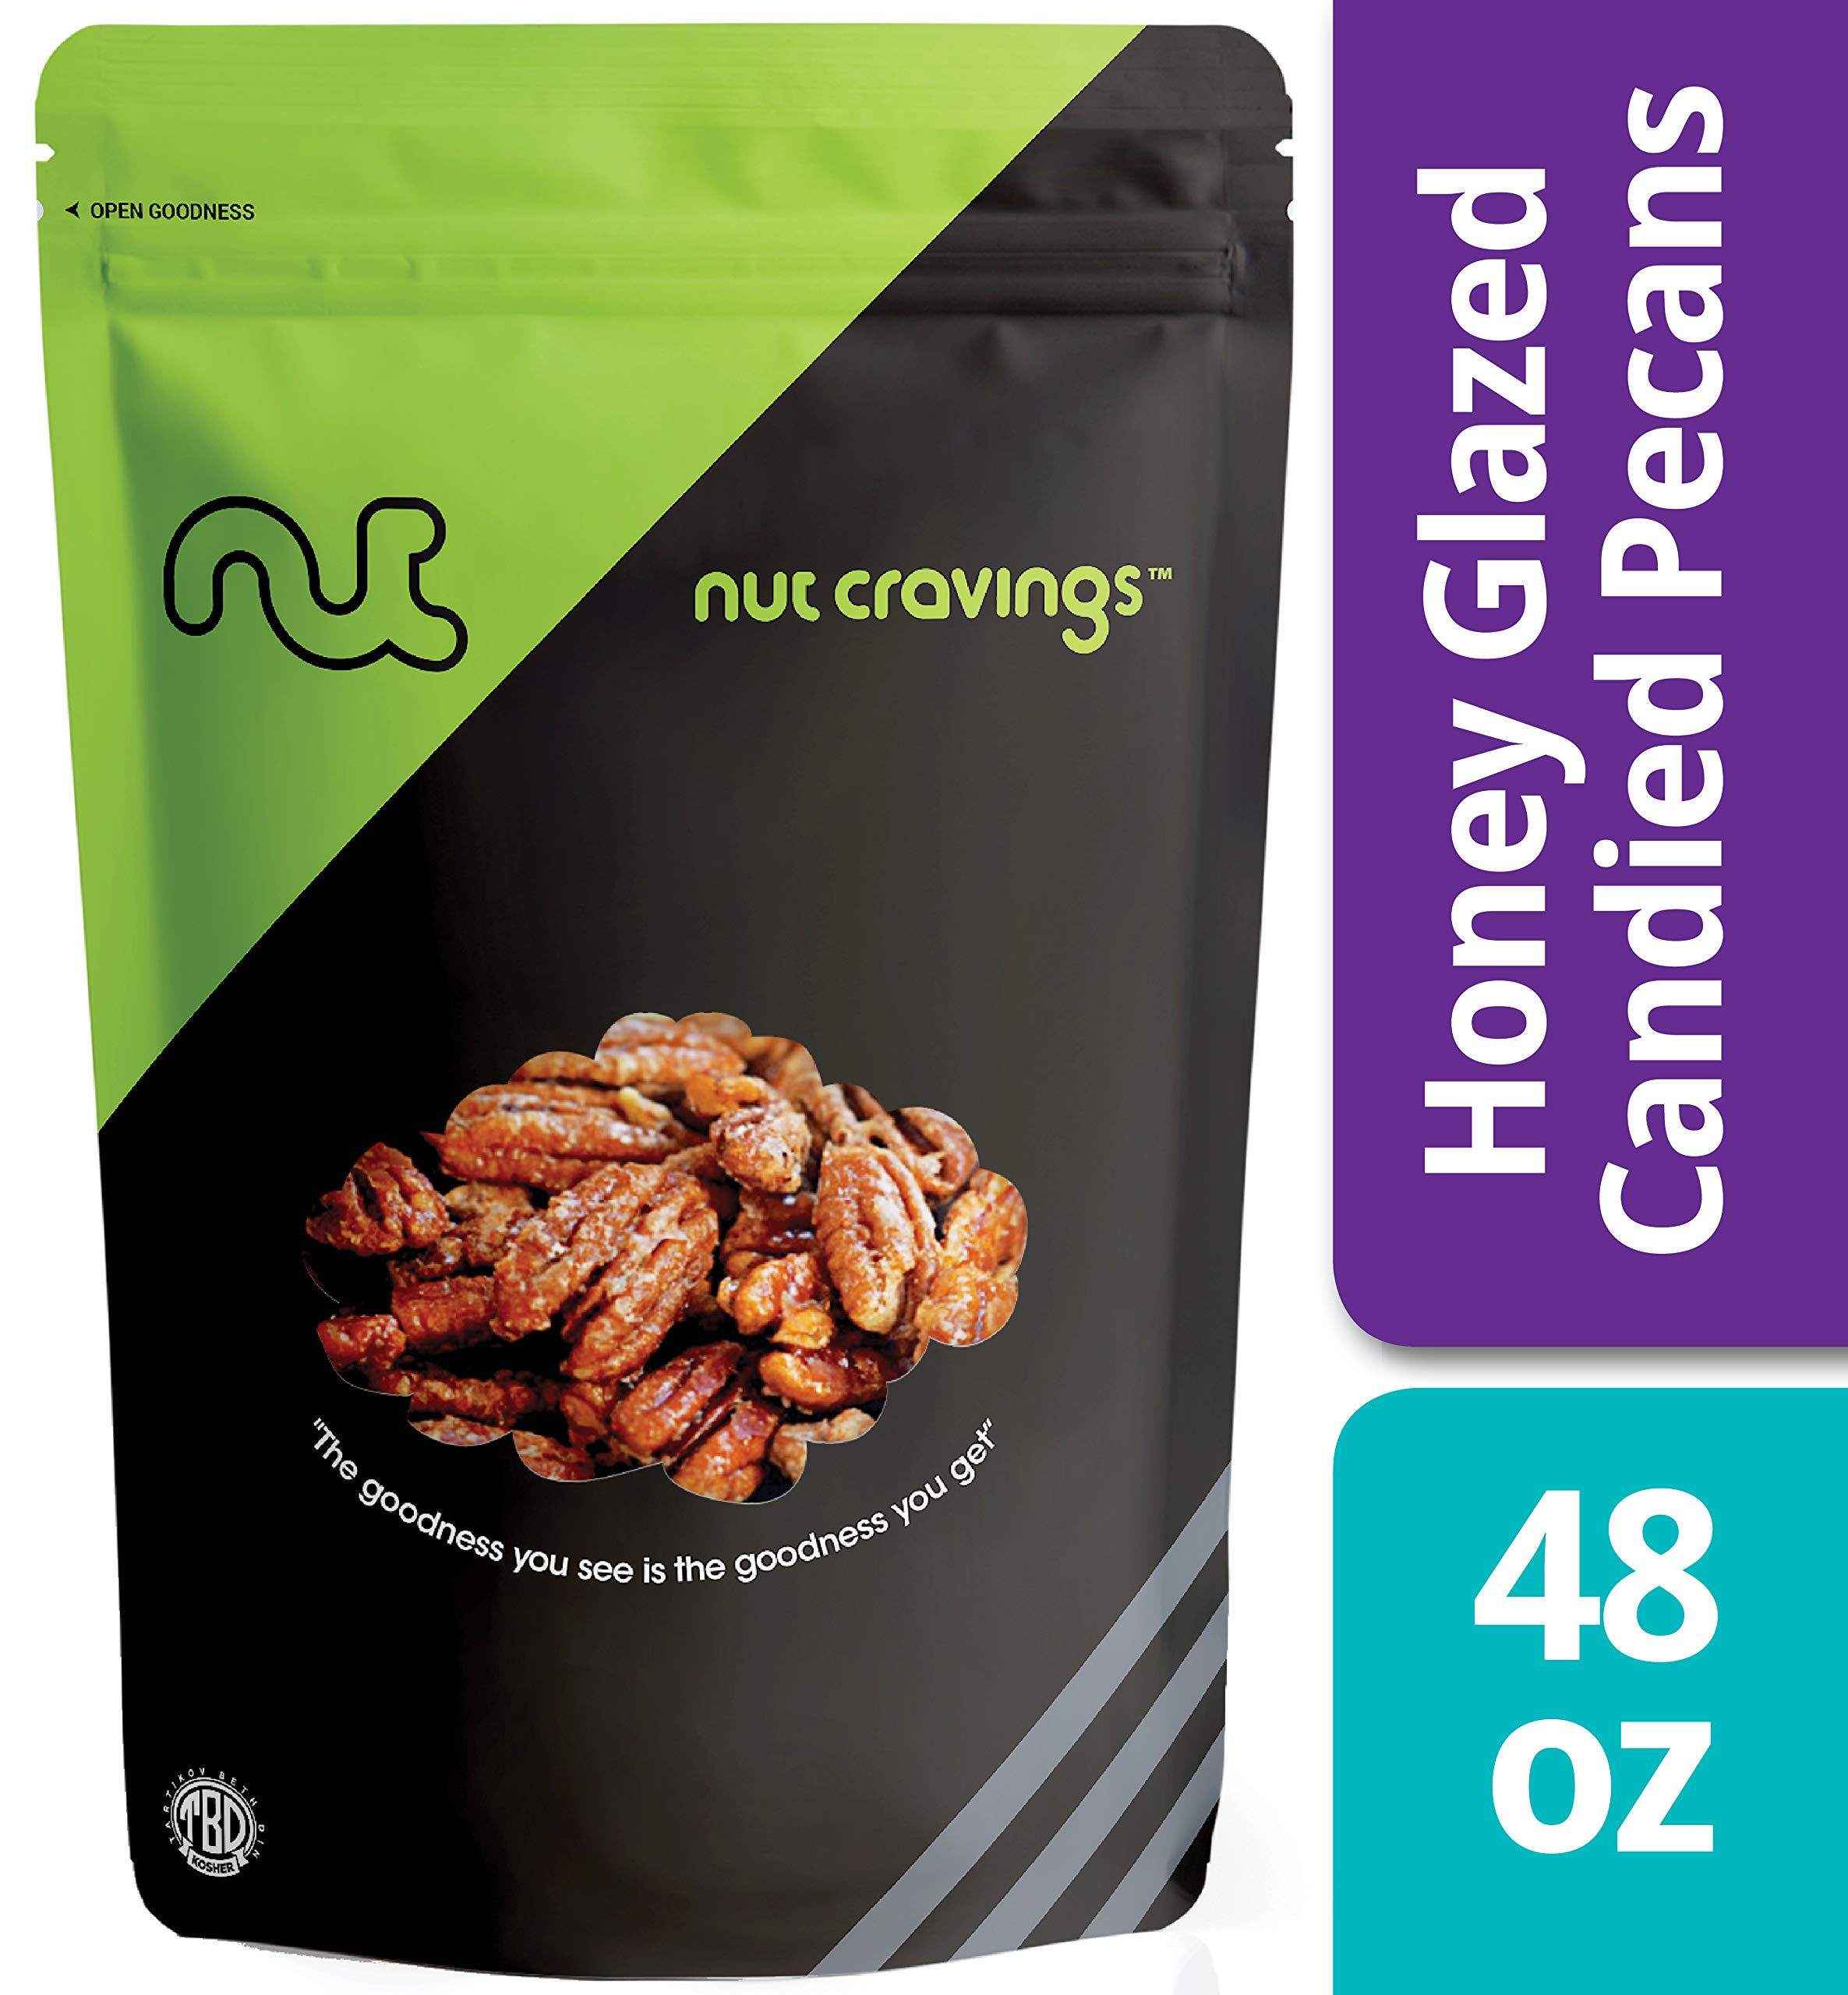 Nut Cravings - Fresh Honey Glazed Candied Pecans (3 Pounds) - In Resealable Bag - 48 Ounce by Nut Cravings